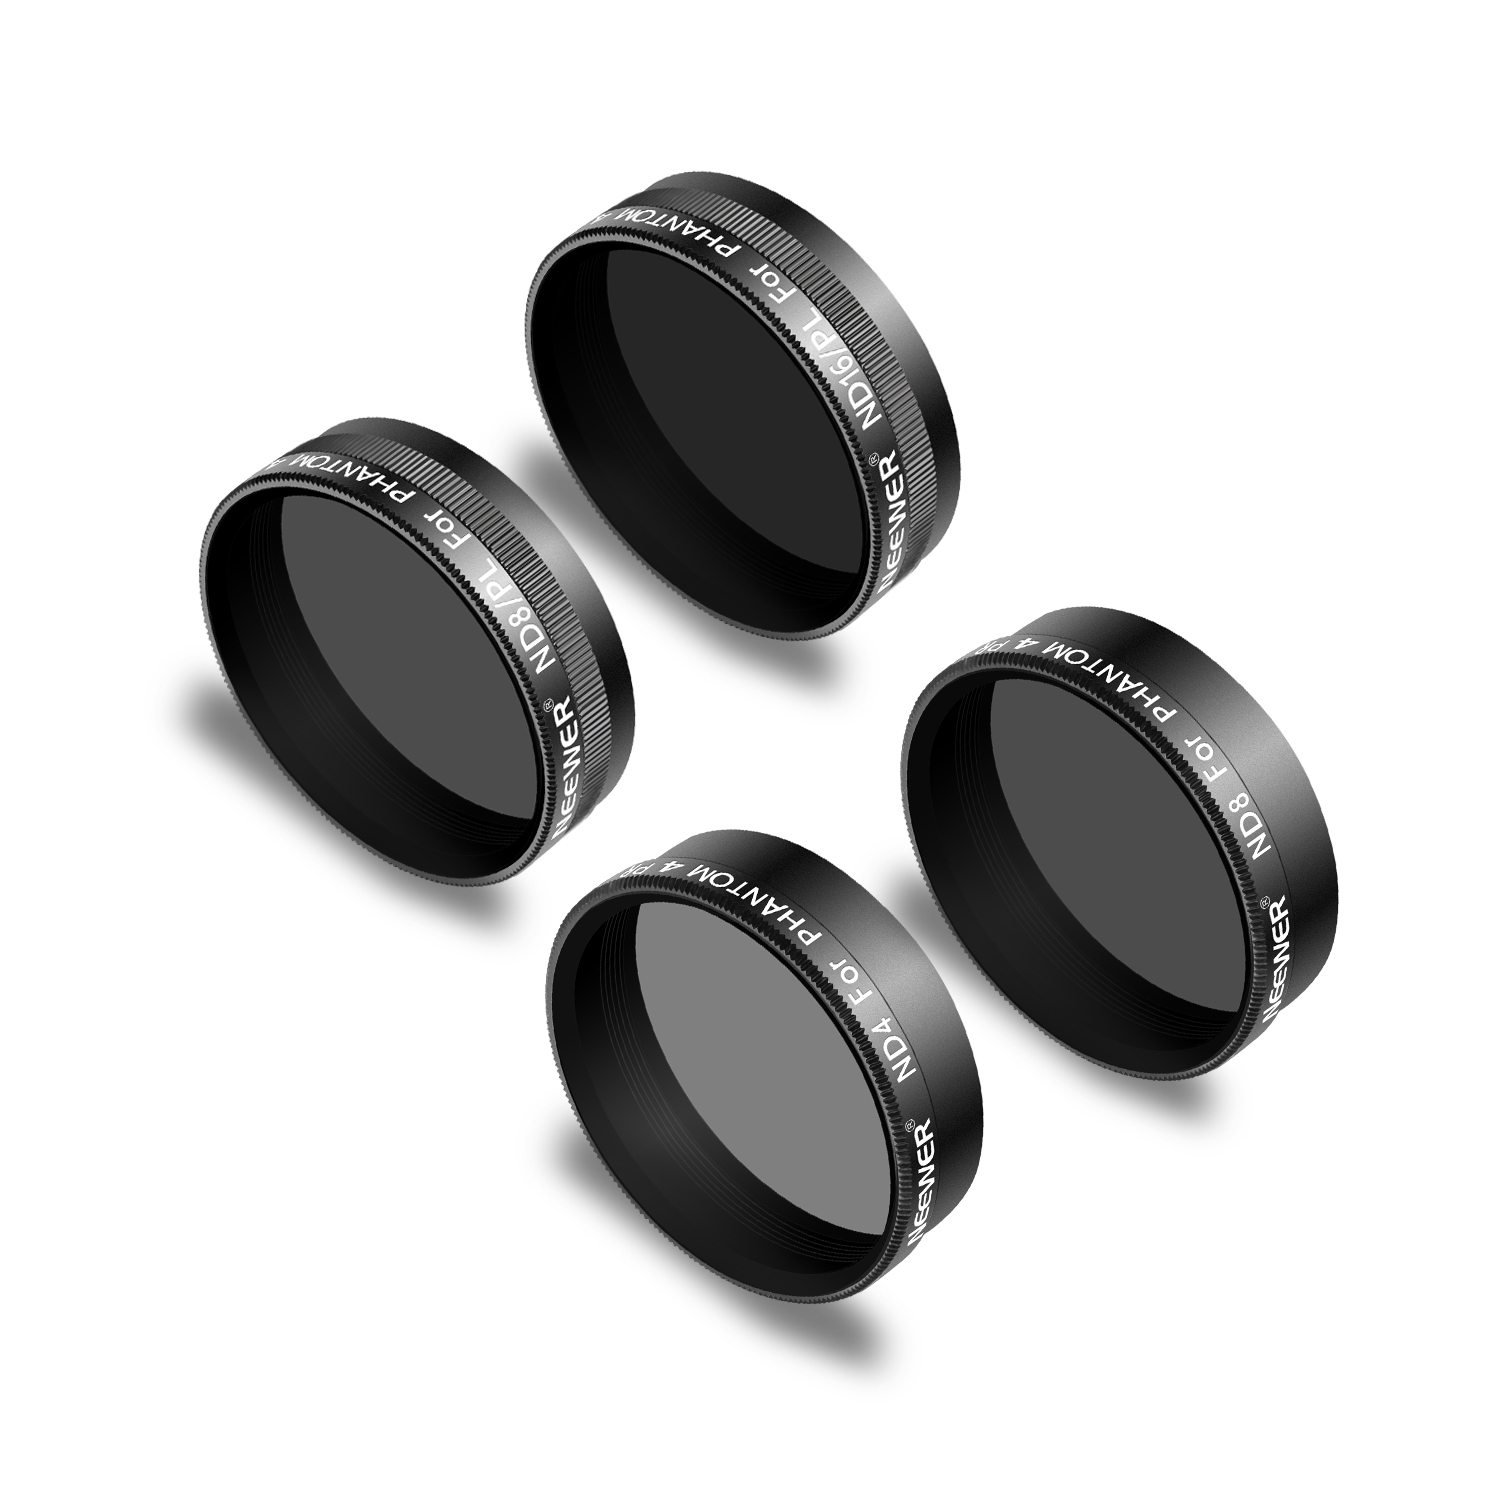 ND16//PL ND4//PL Black ND8 Made of Multi Coated Waterproof Aluminum Alloy Frame Optical Glass ND8//PL Neewer 6 Pieces Pro Lens Filter Kit for DJI Mavic Air Drone Quadcopter Includes: ND4 ND16